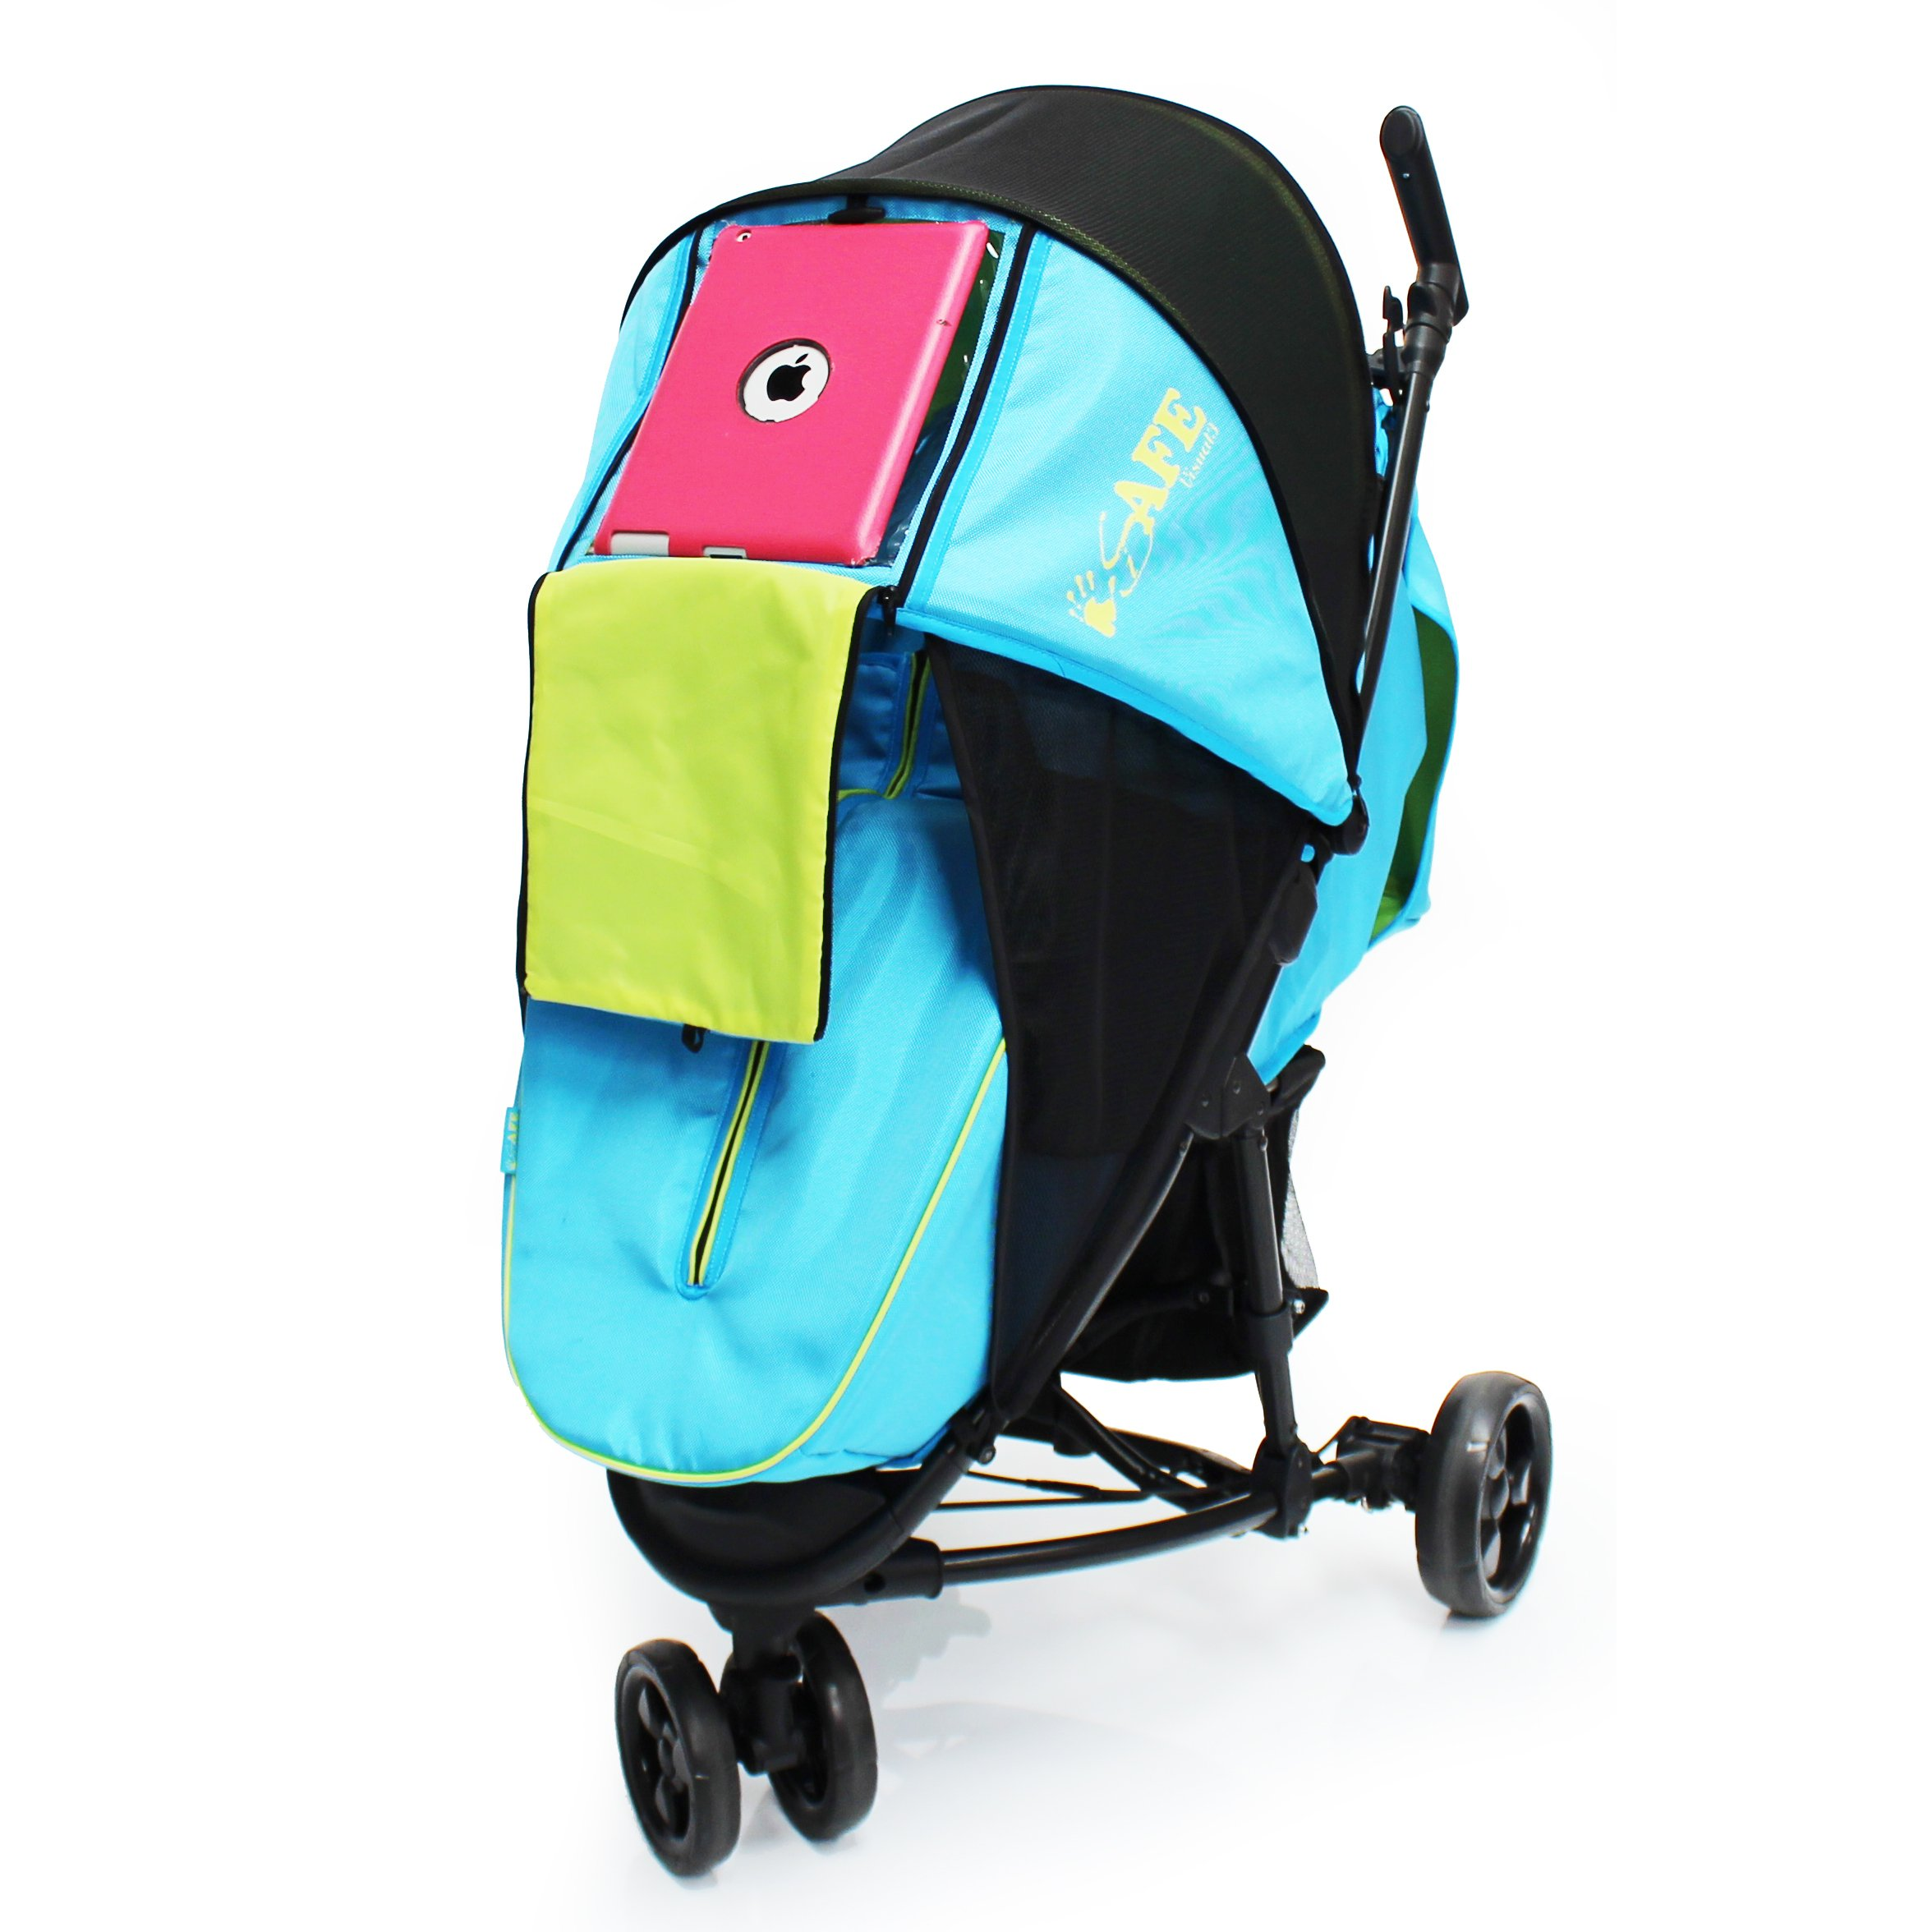 iSafe Visual 3 Raspberry Cake Three Wheeler Stroller from Birth with Tablet Smart Phone Media Pocket Baby Products